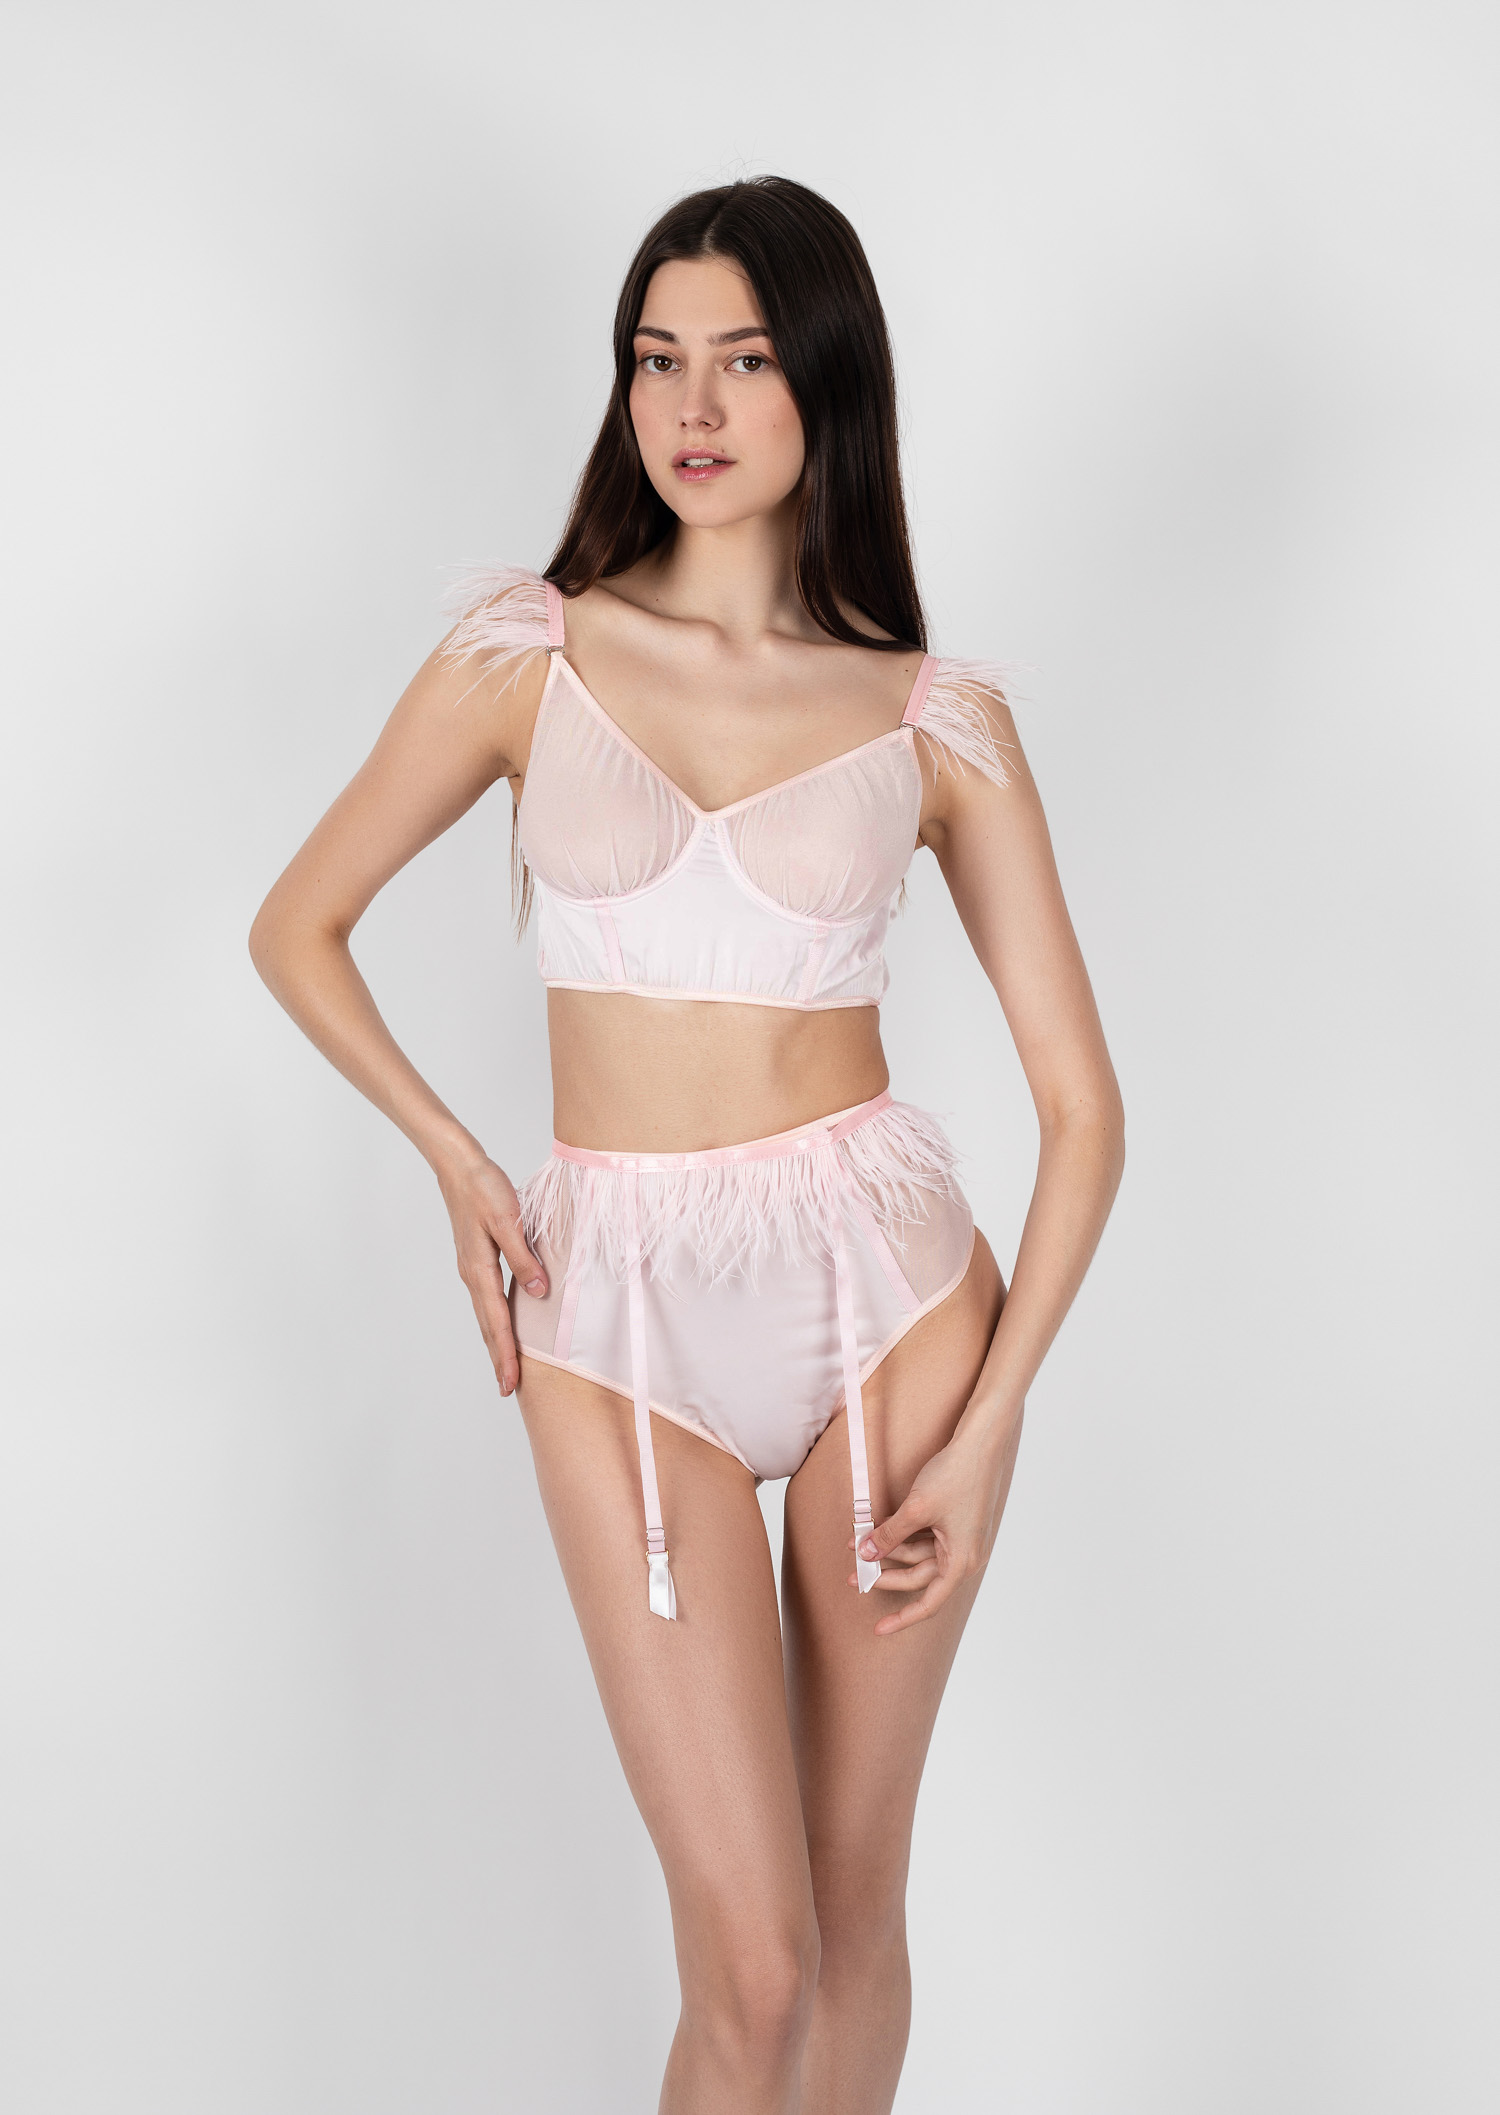 Flamingo lingerie set / clear pink erotic lingerie with garter belt / transparent underwired bra with high waist panties and feathers